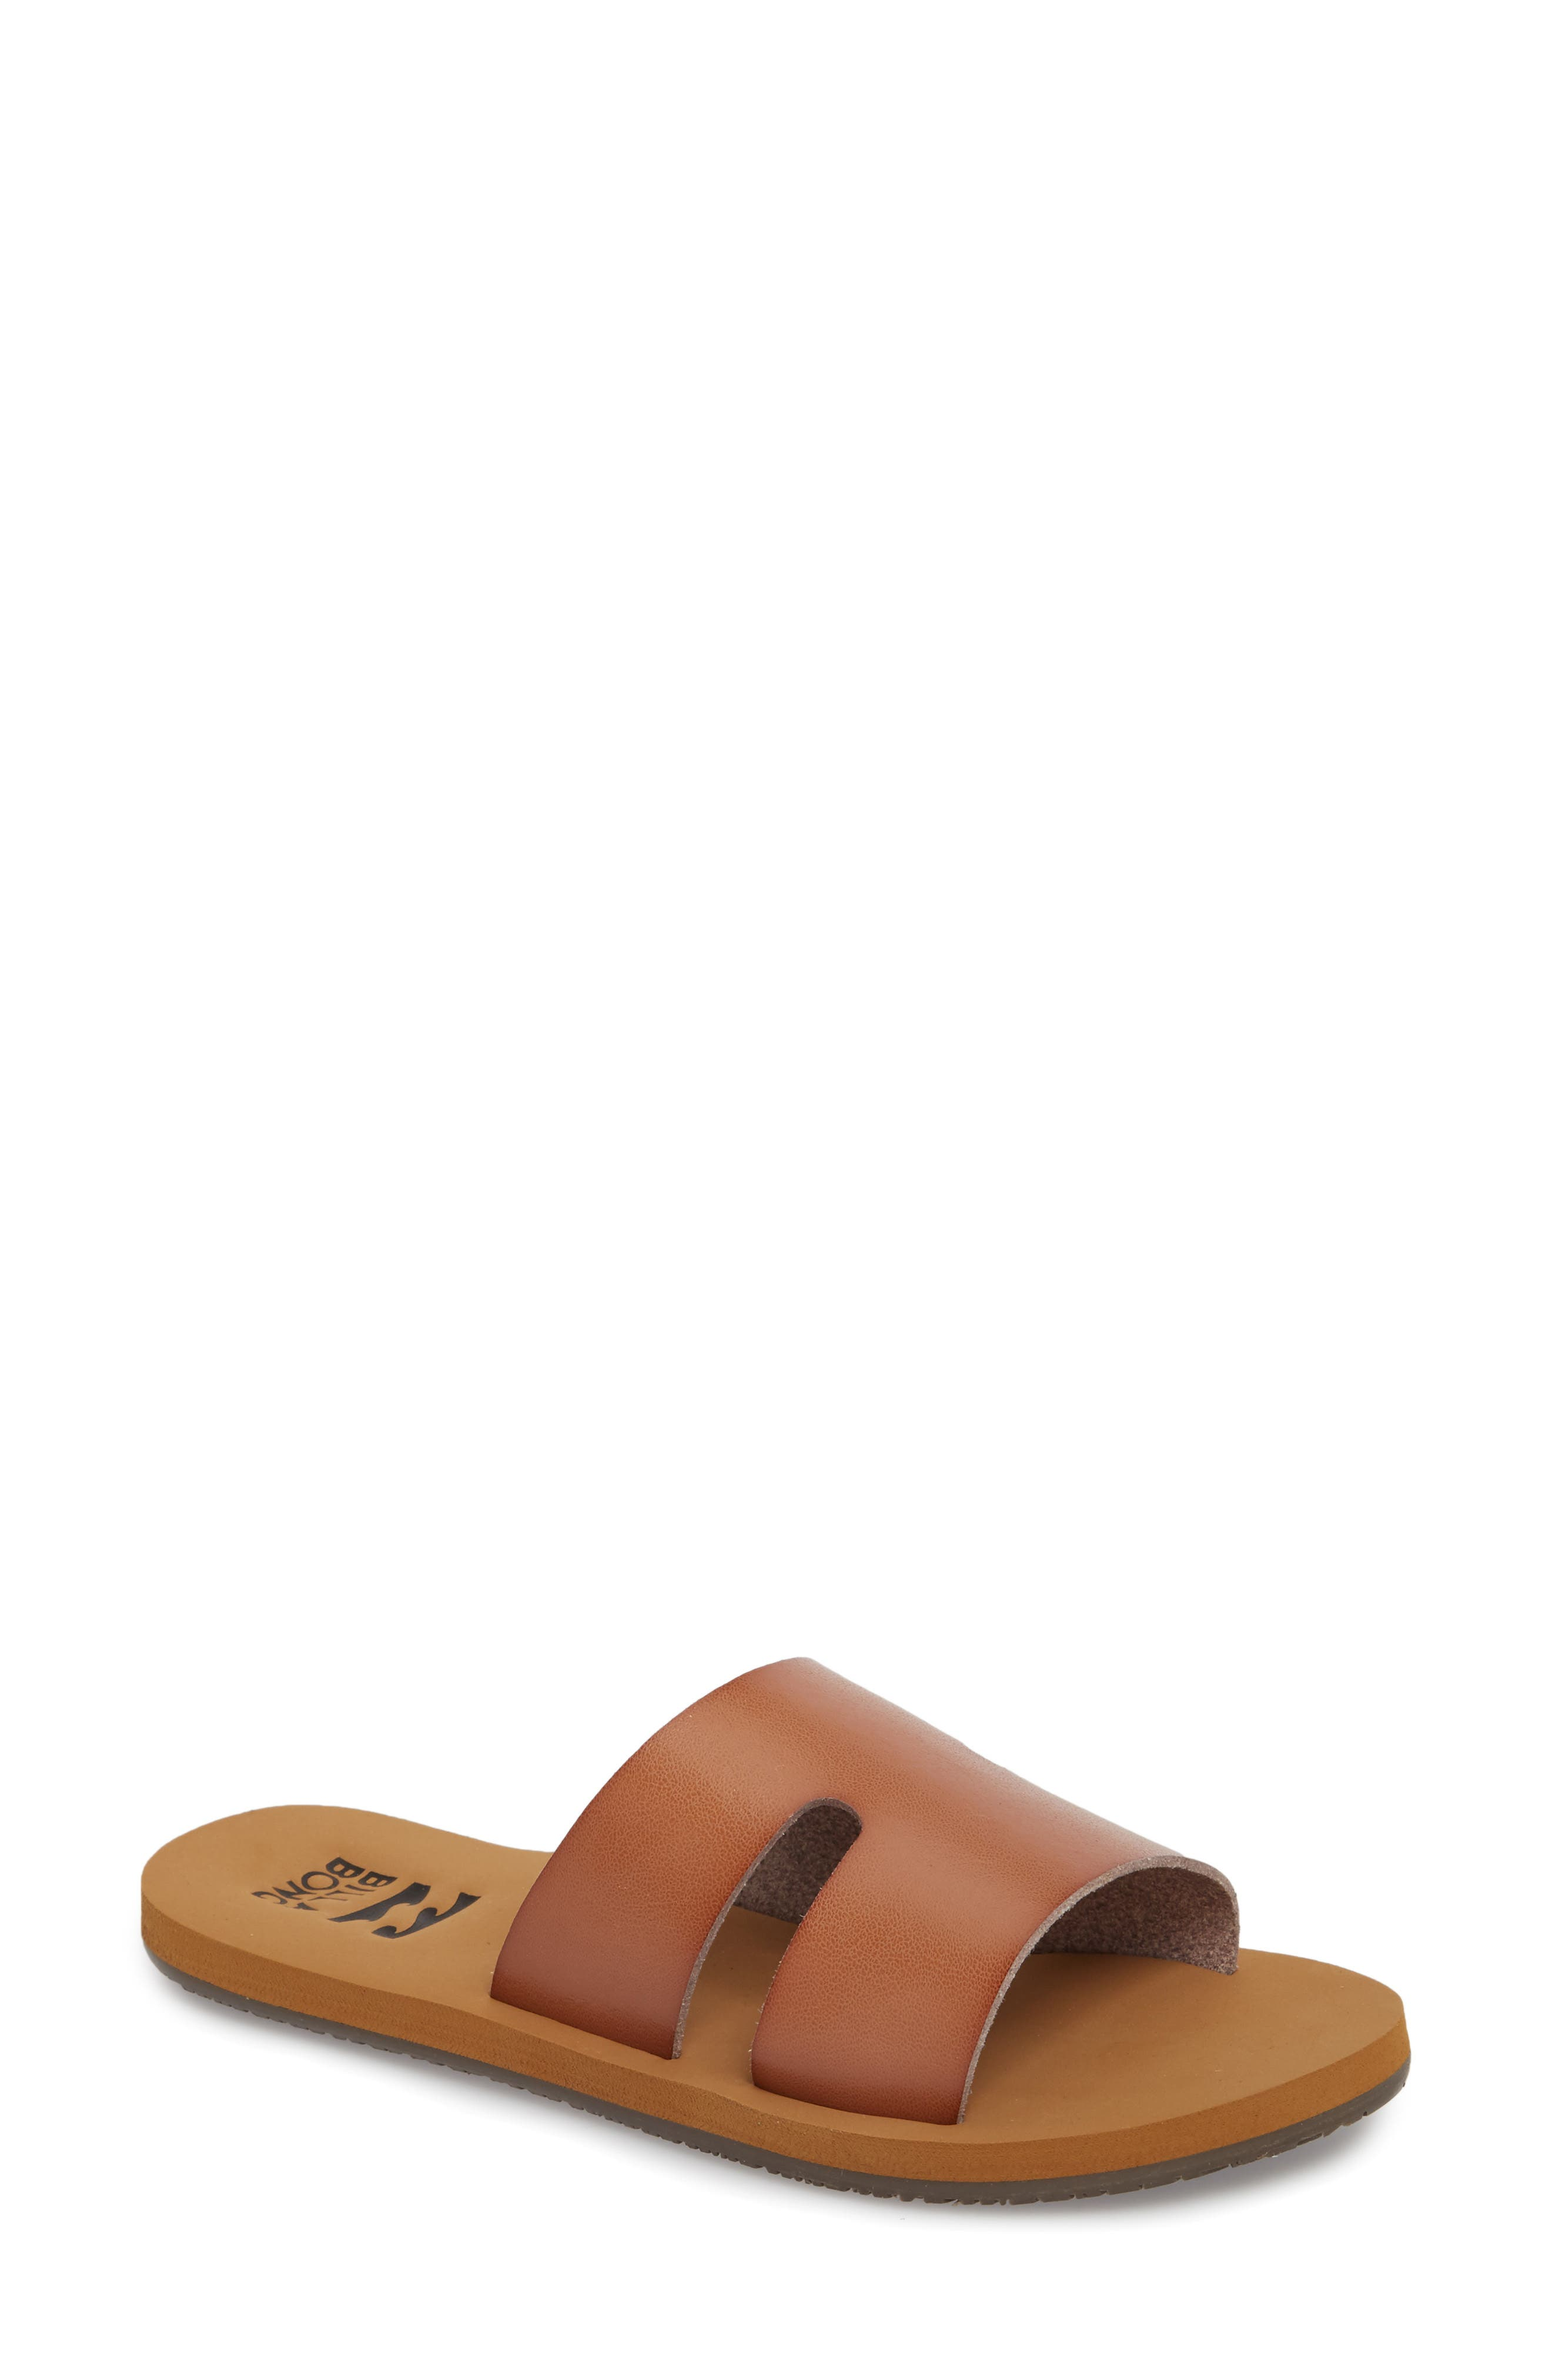 Wander Often Slide Sandal,                             Main thumbnail 1, color,                             DESERT BROWN